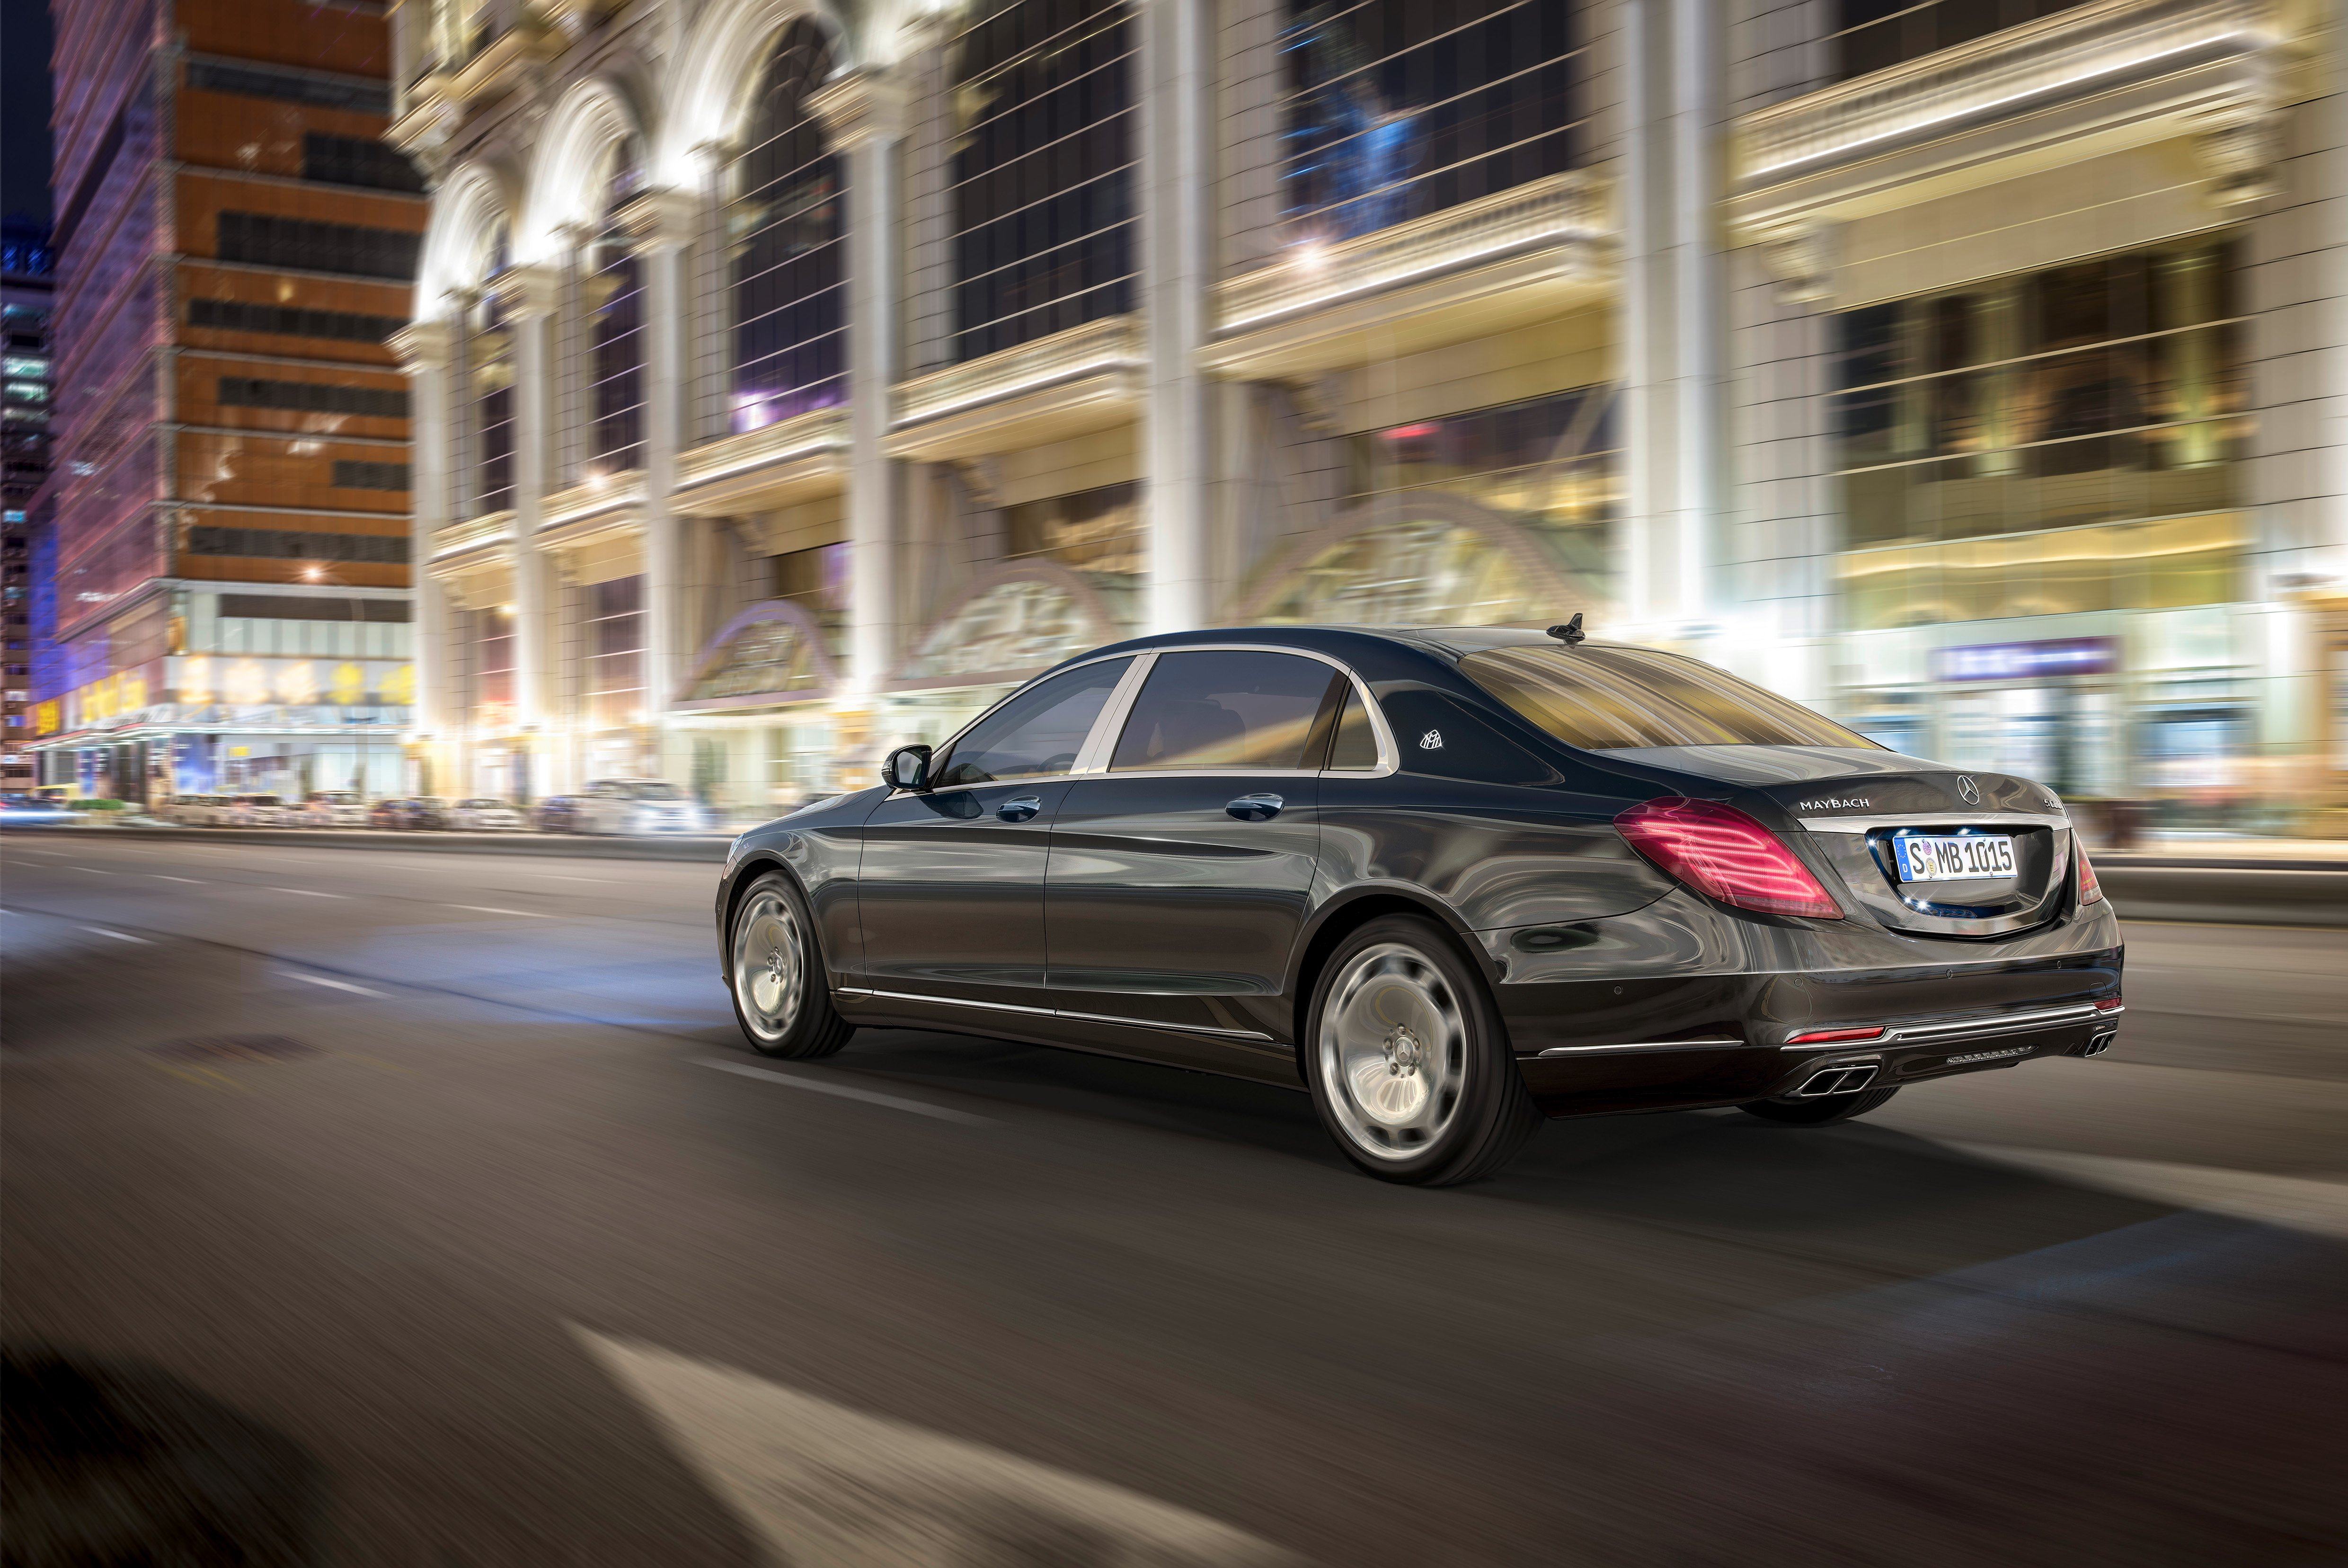 Mercedes Maybach S600 HD wallpapers download 4961x3313